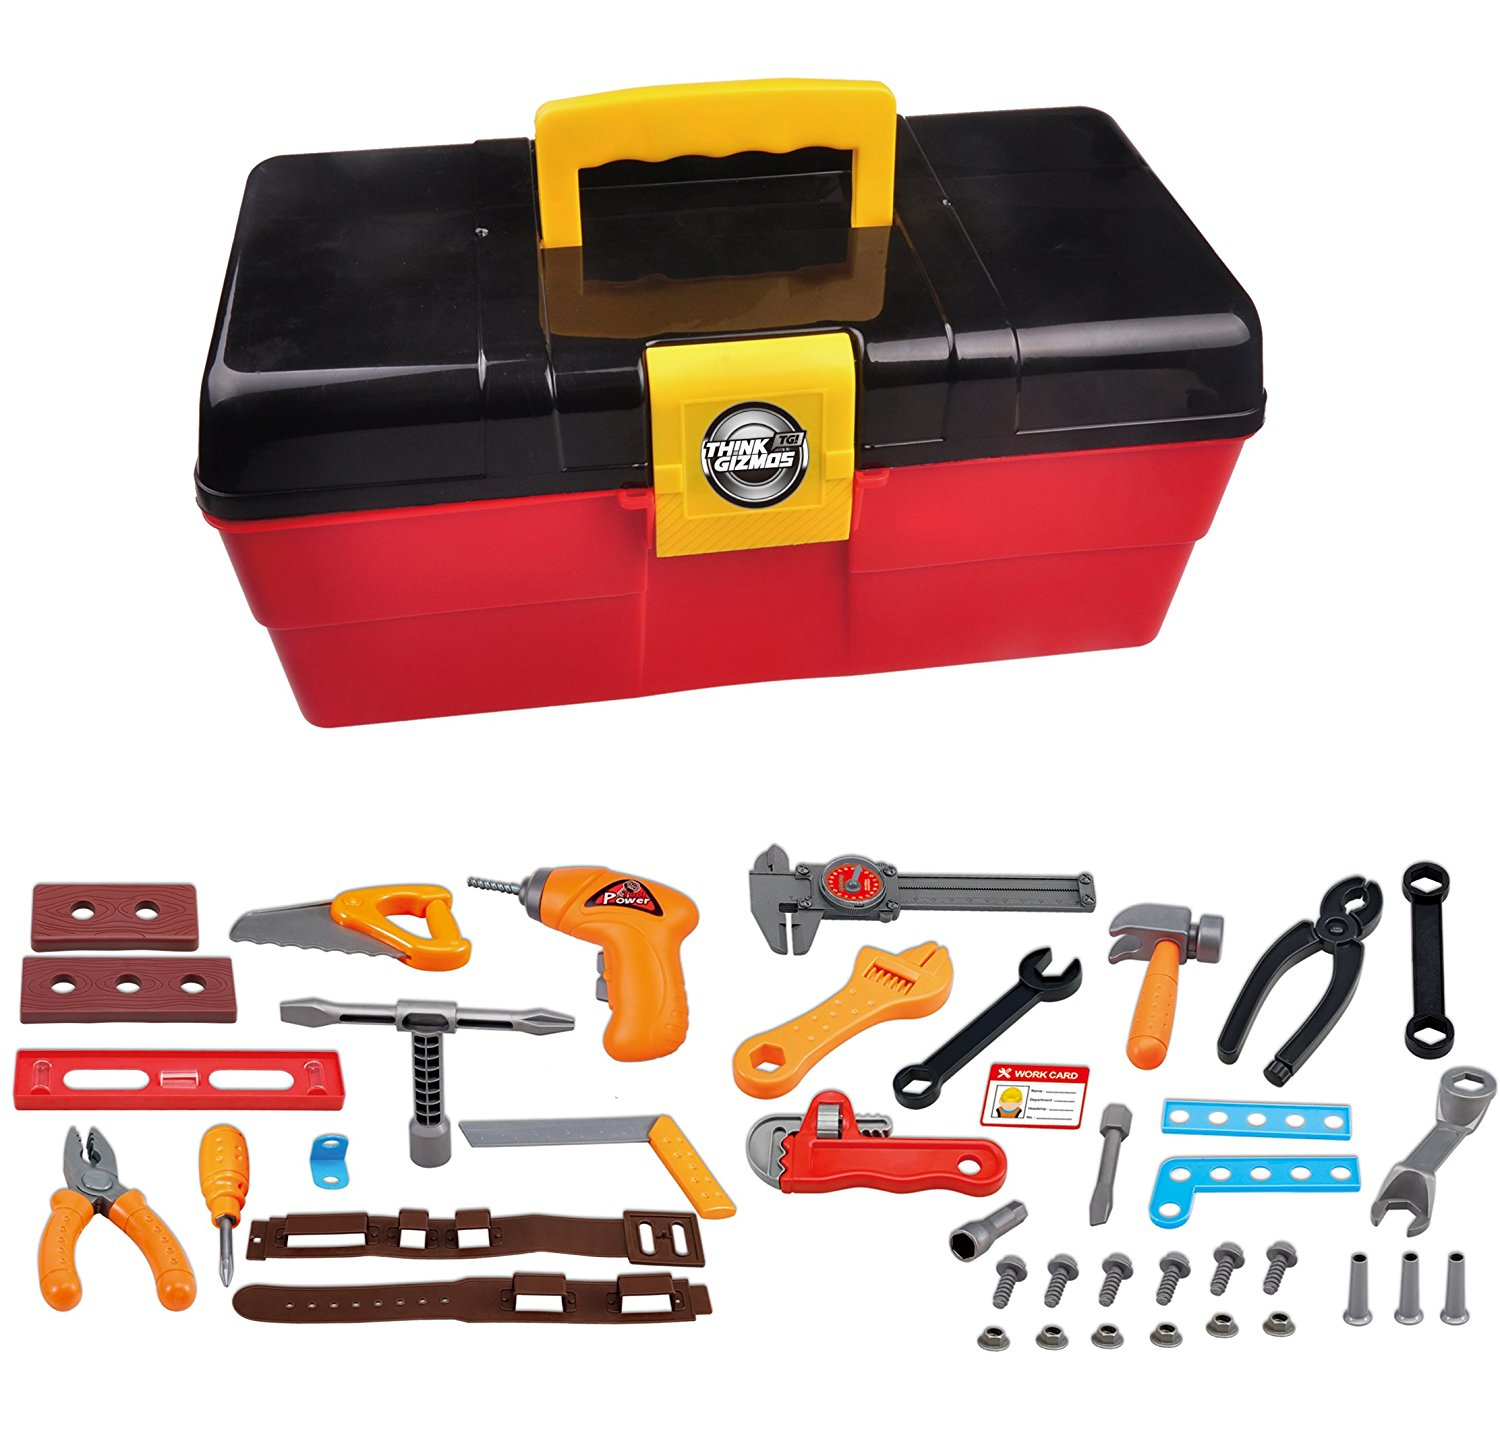 tg668 kids toy tool set with 40 pieces and electric drill uk